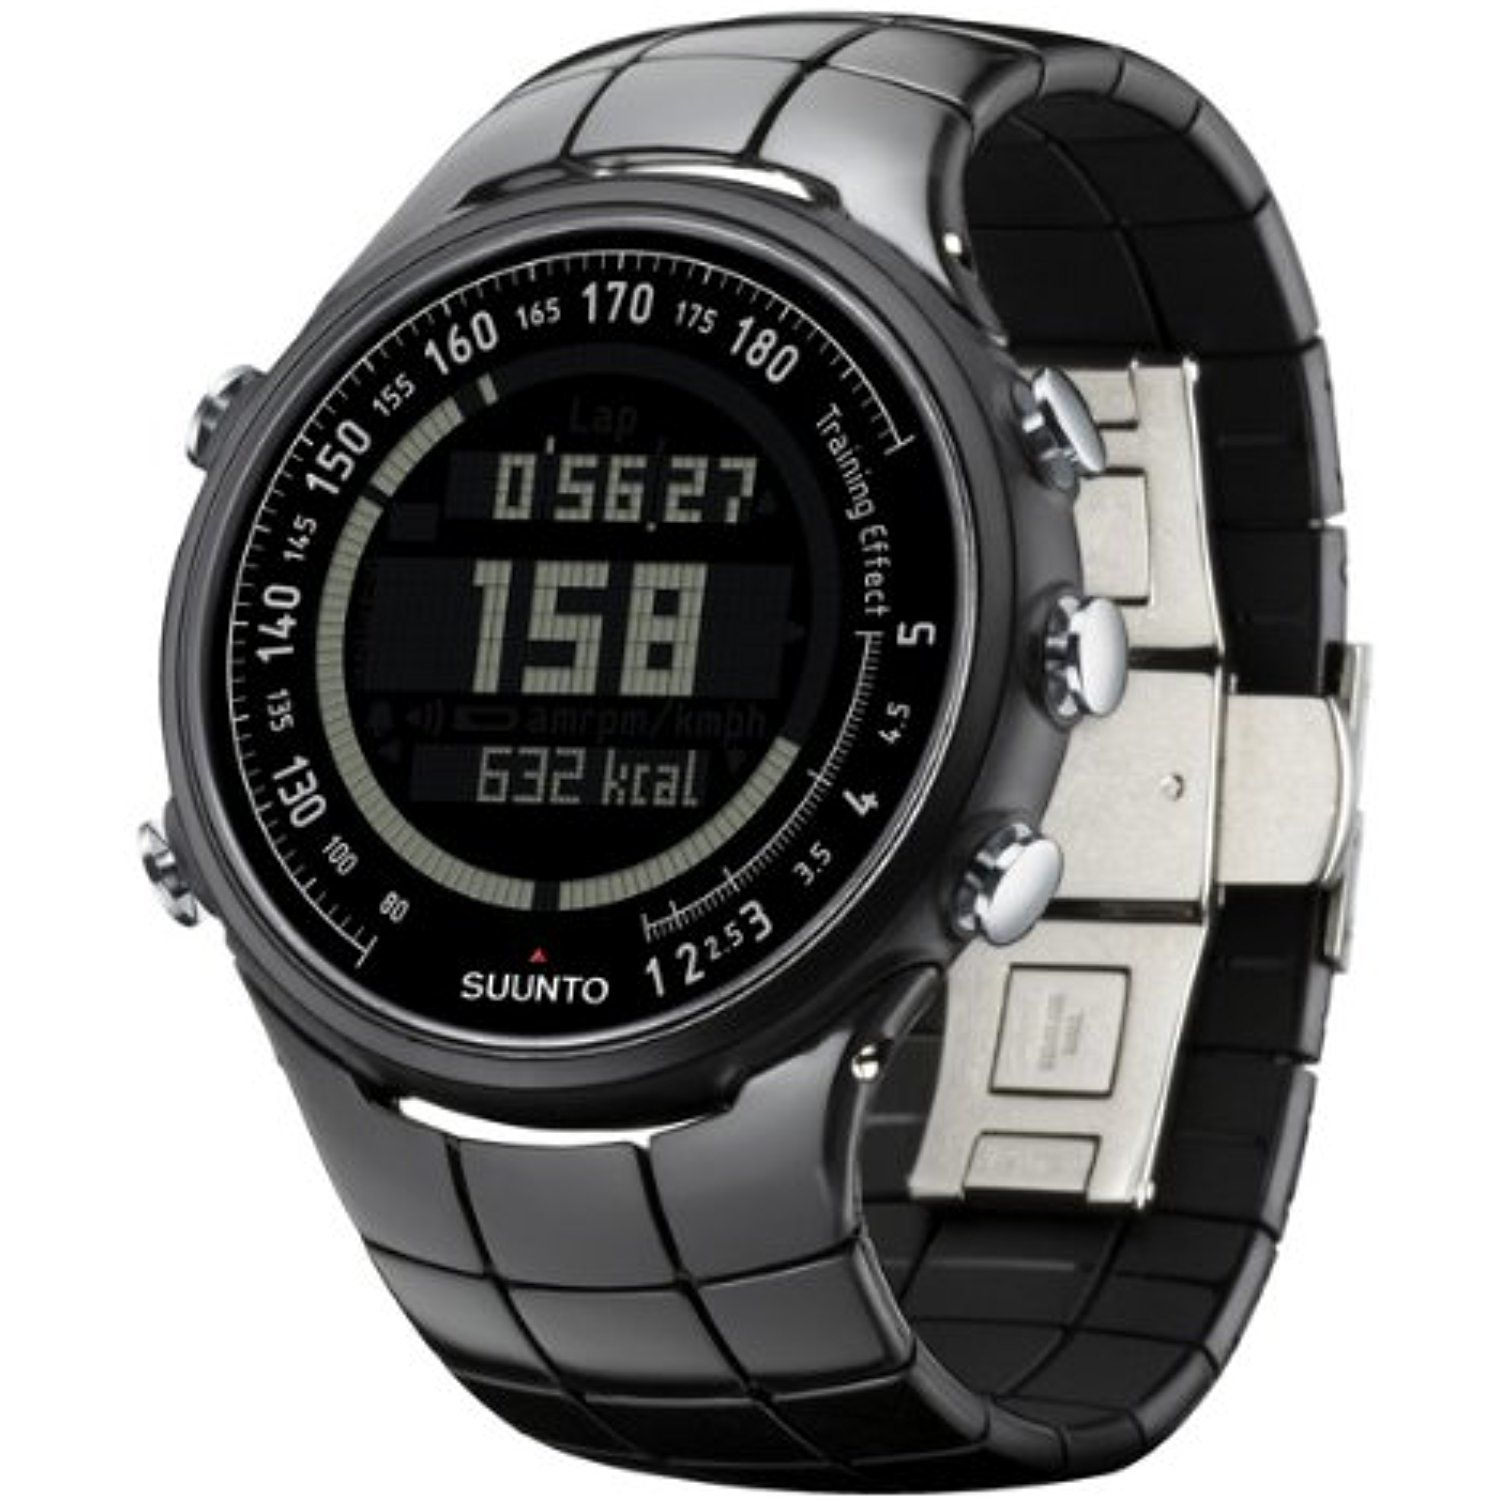 Brand New Polished Suunto T3c Wrist Watch Heart Rate